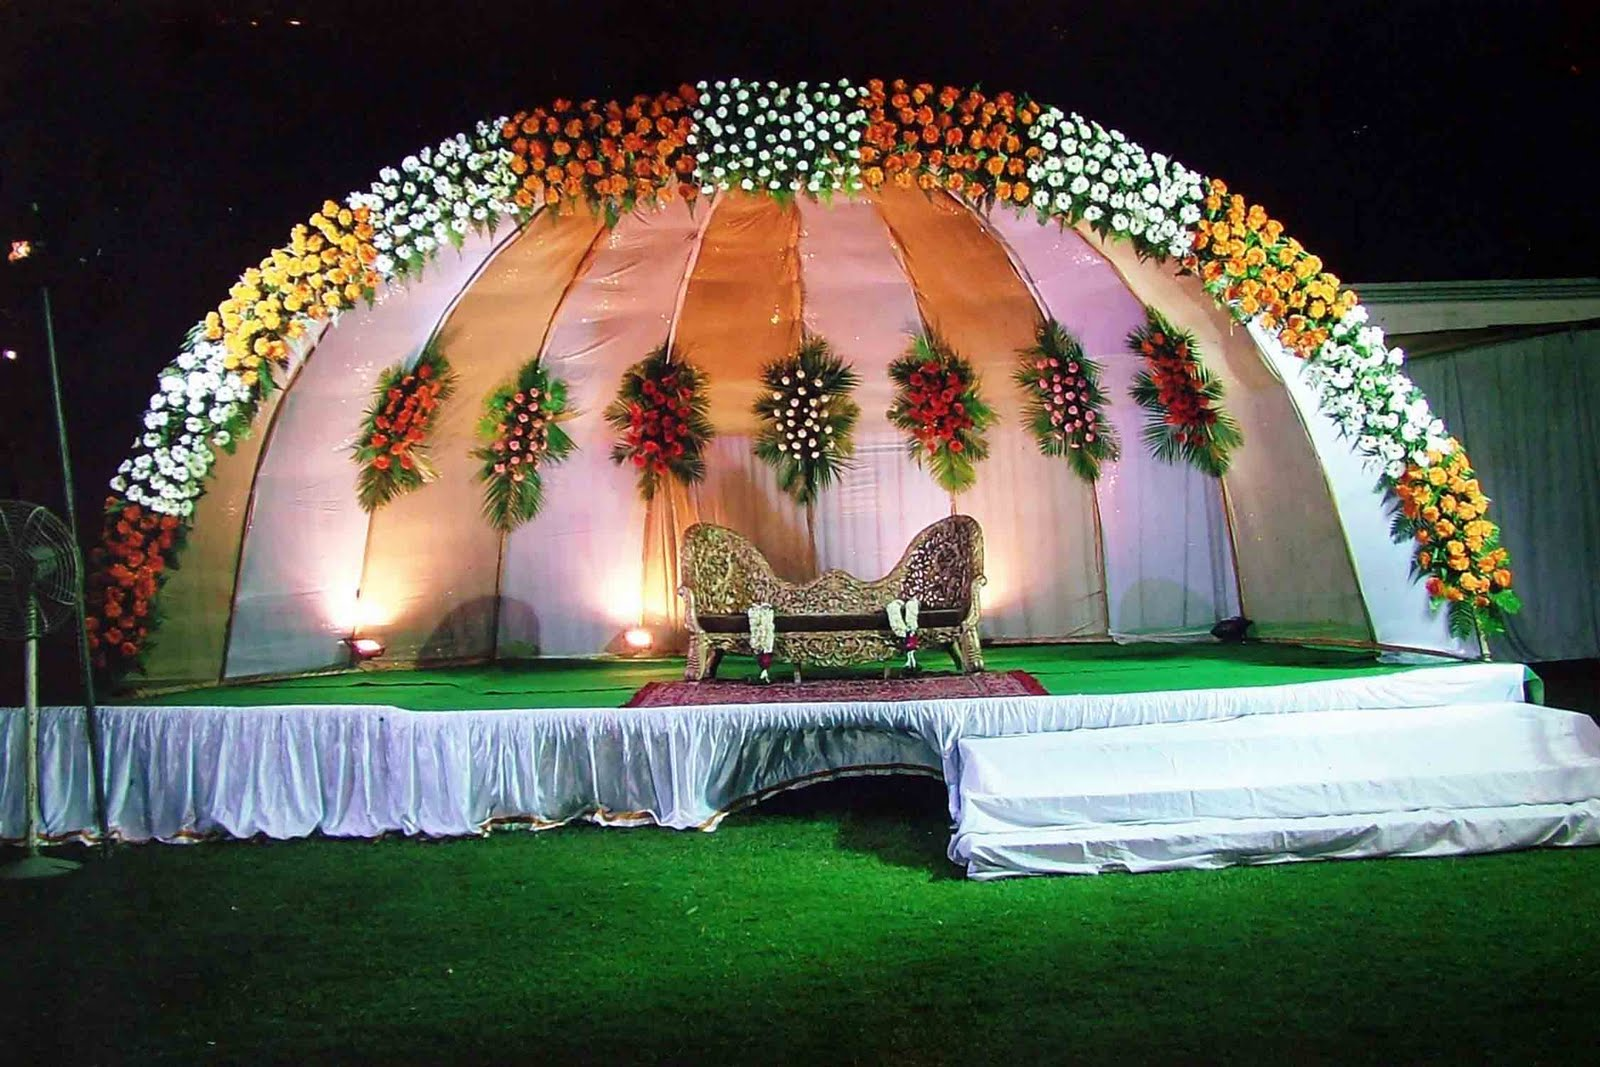 Most beautiful wedding stage decoration ideas designs 2015 images hd most beautiful wedding stage decoration ideas designs 2015 images hd wallpaper junglespirit Choice Image